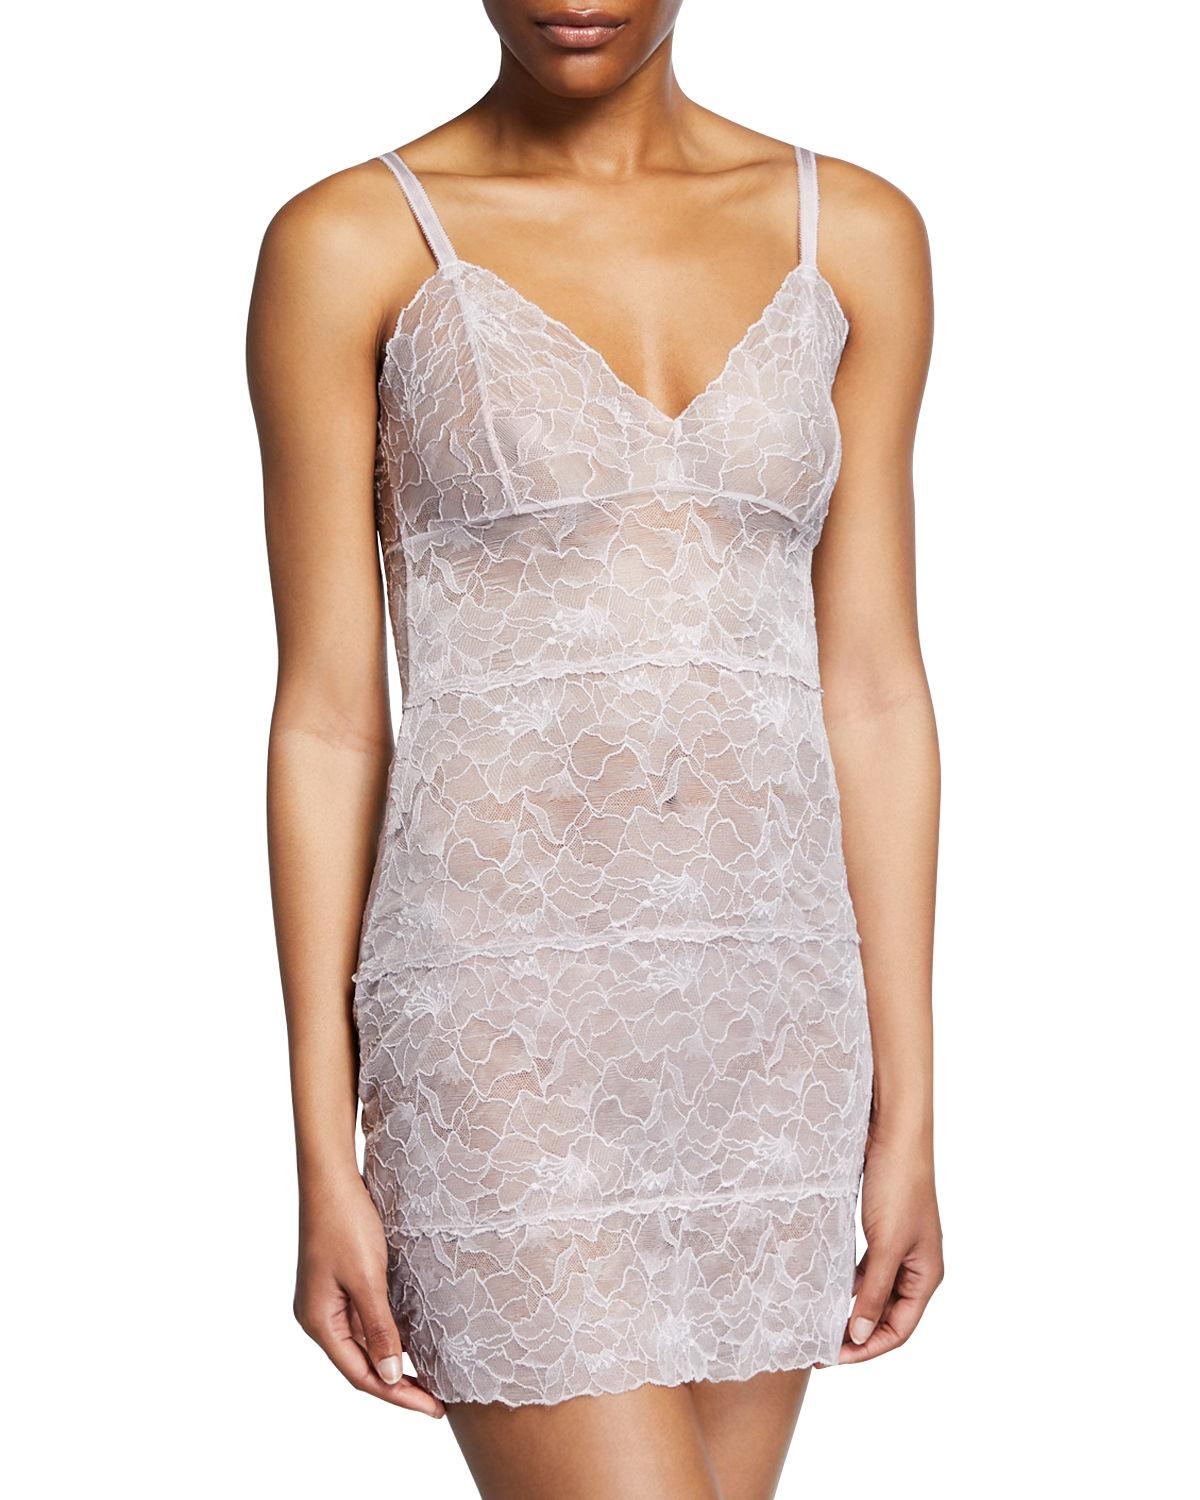 d7b16b4166 Lyst - Samantha Chang Glamour All-lace Slip in Blue